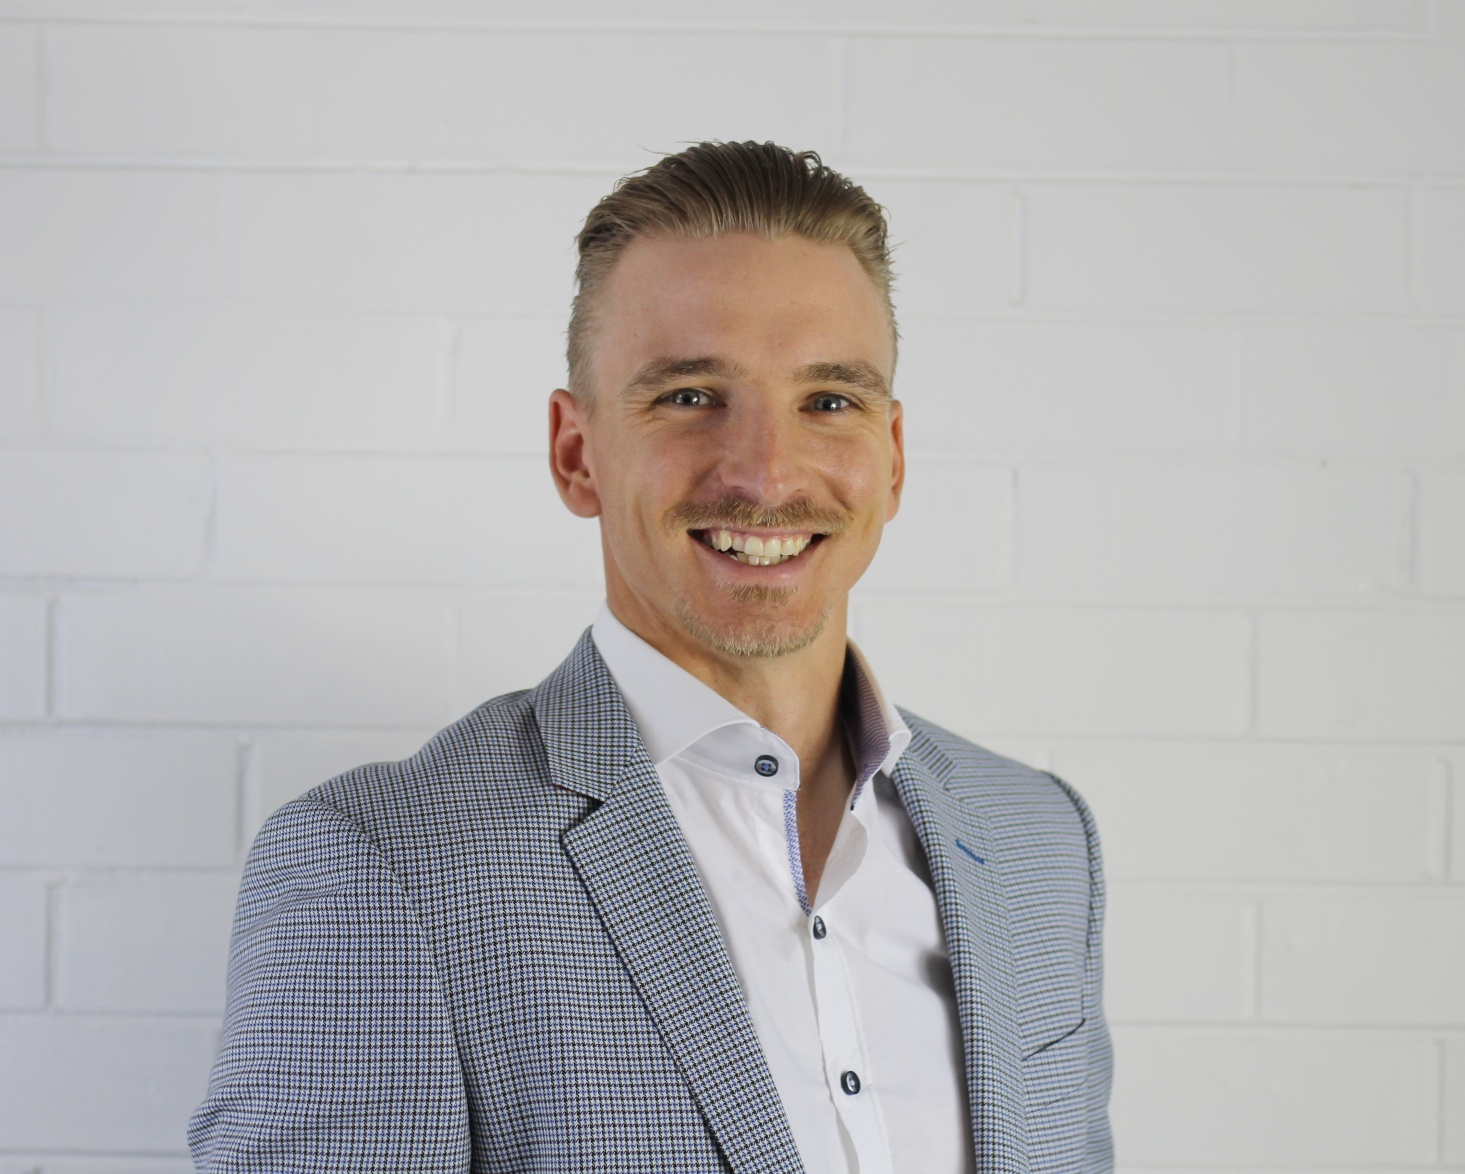 Dennis Armfield - General Manager